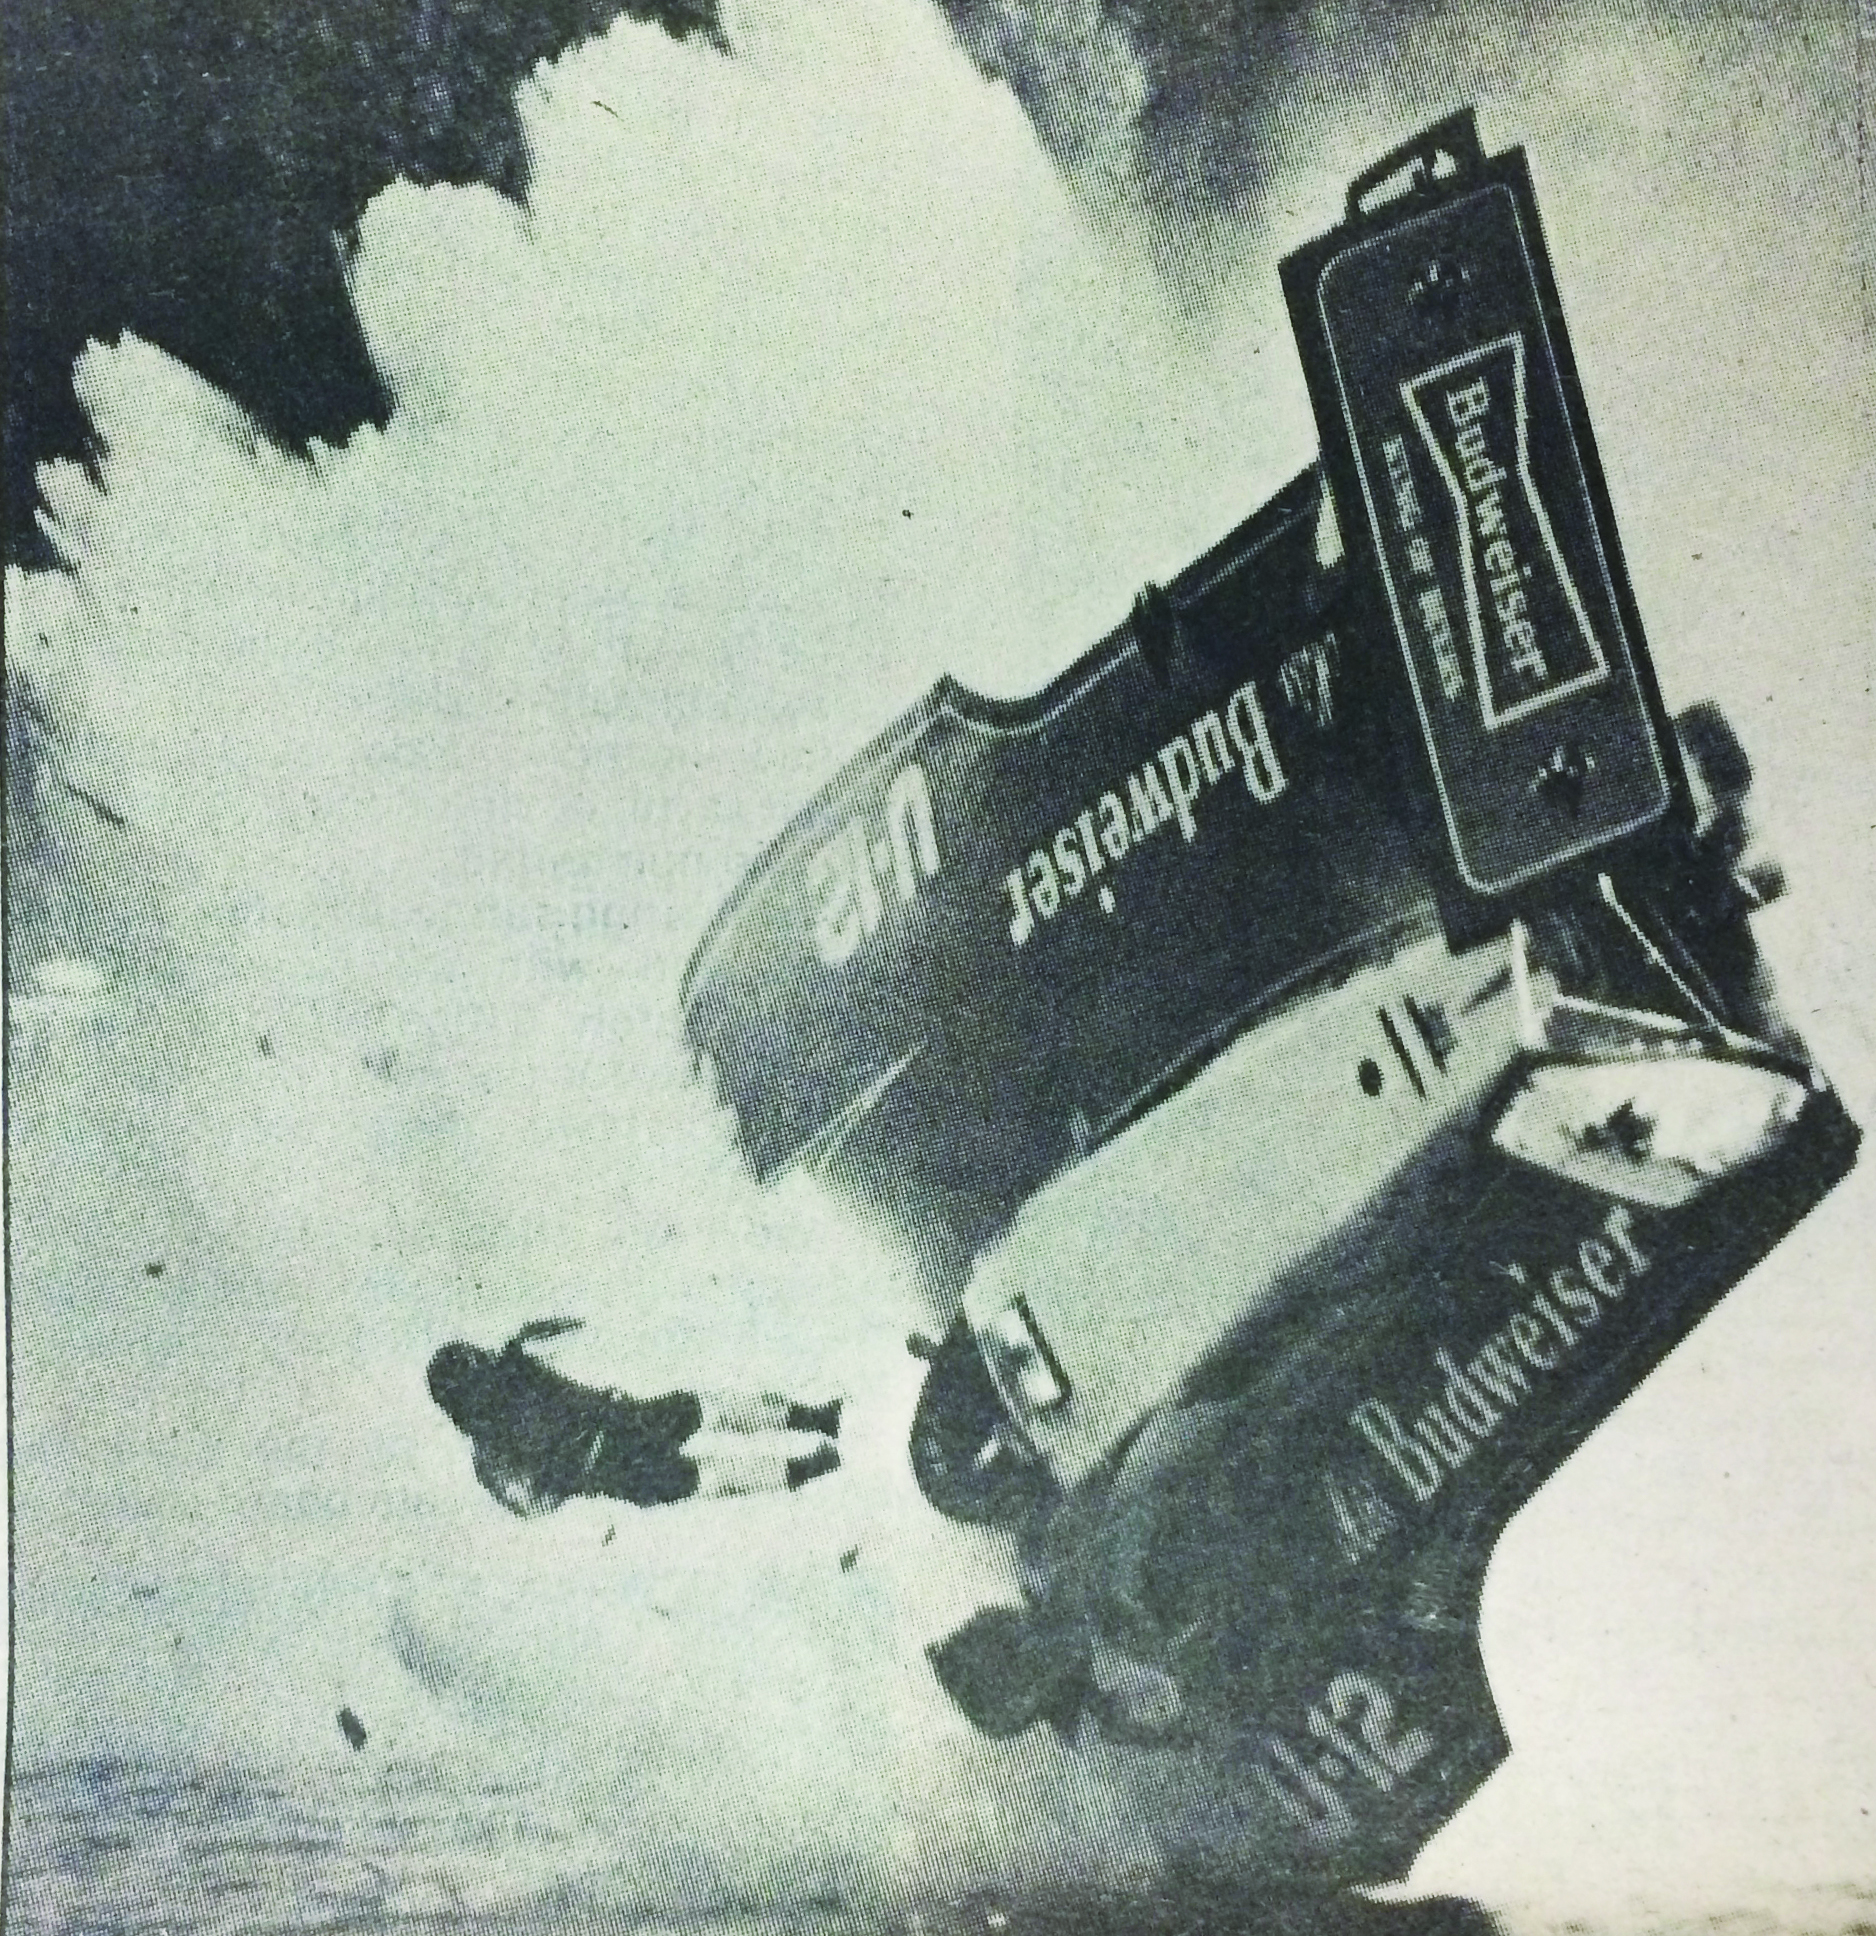 1979: Miss Bud misses speed record, driver survives 200 mph crash